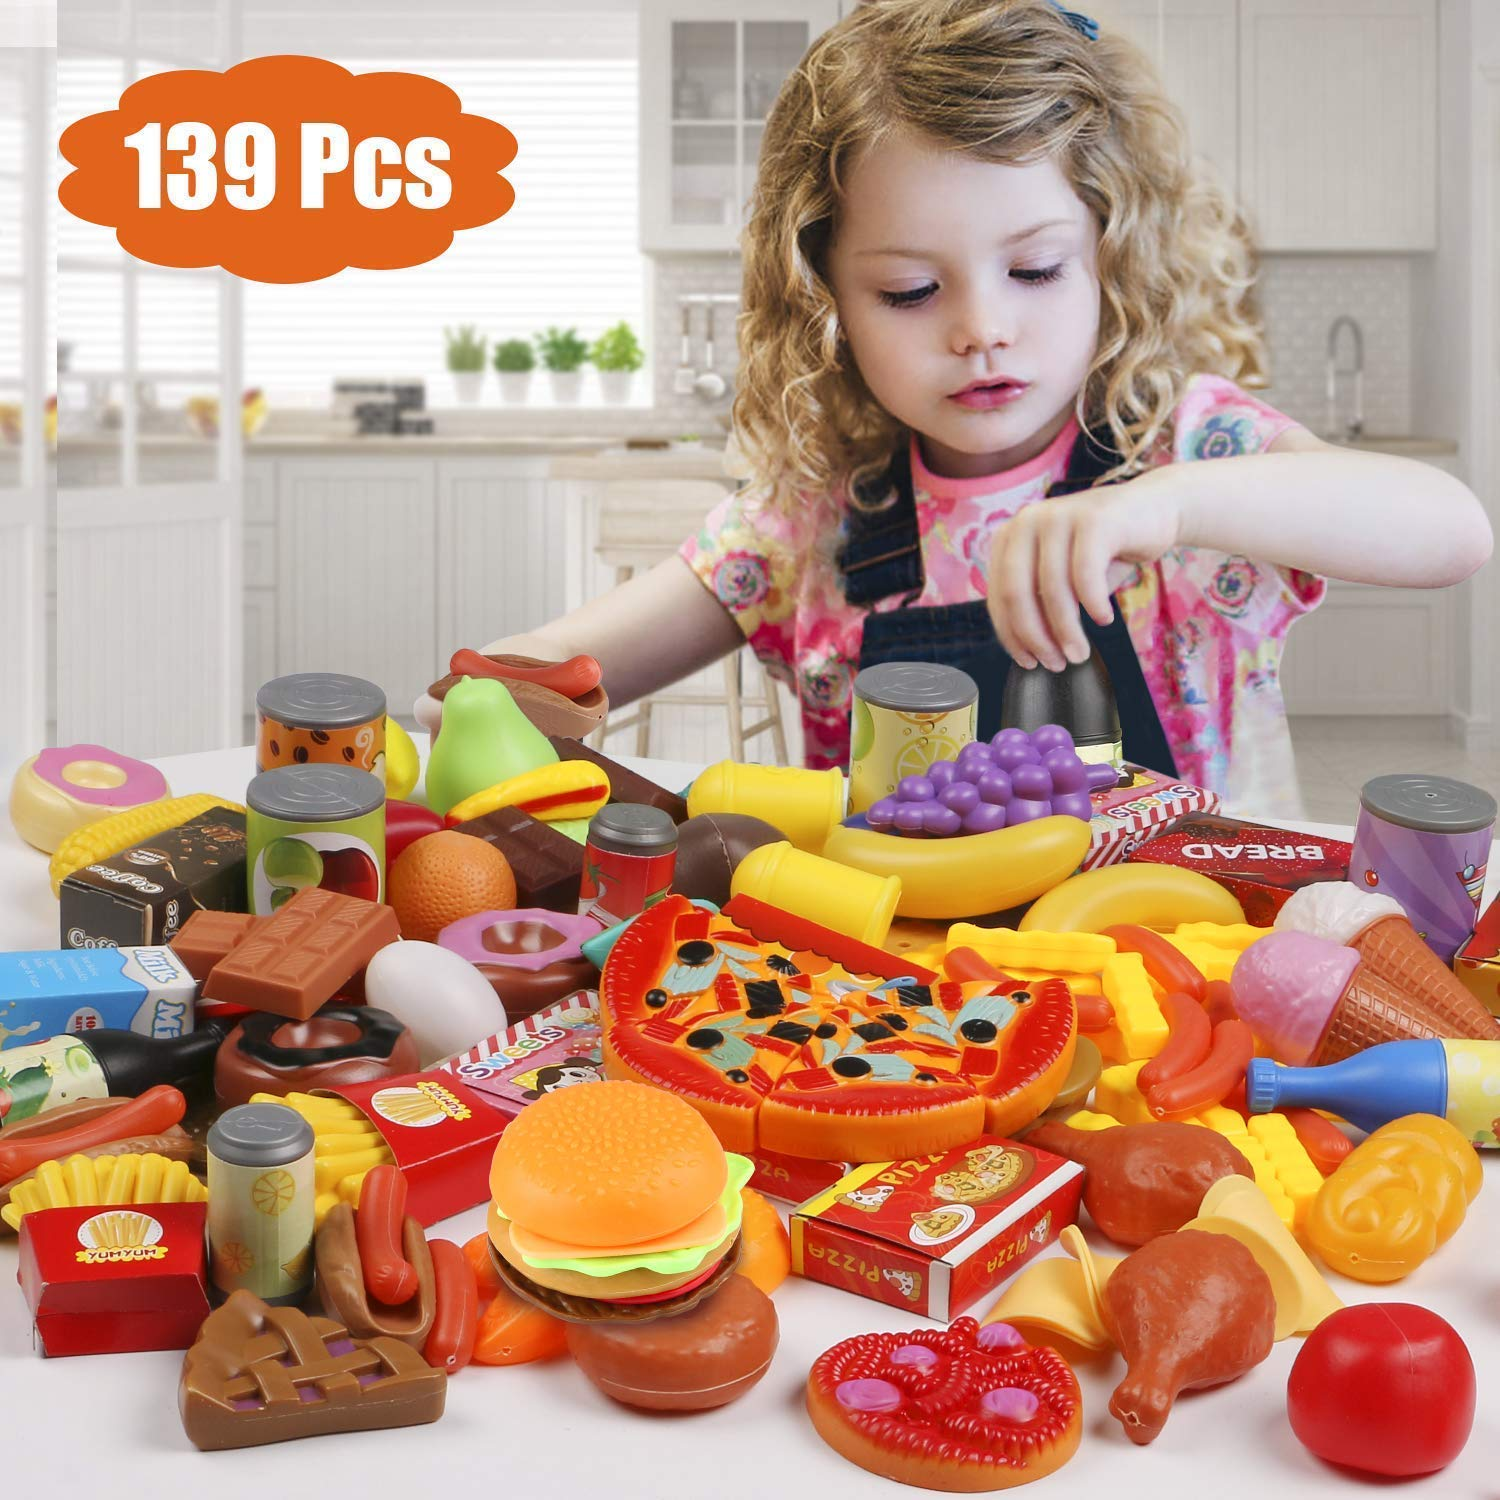 Tencoz Play Food Set, 139 Pieces Play Food Kitchen Toys with Fruits Vegetables Drinks Etc Pretend Play Food Toys Gifts for Kids Toddlers Girls by Tencoz